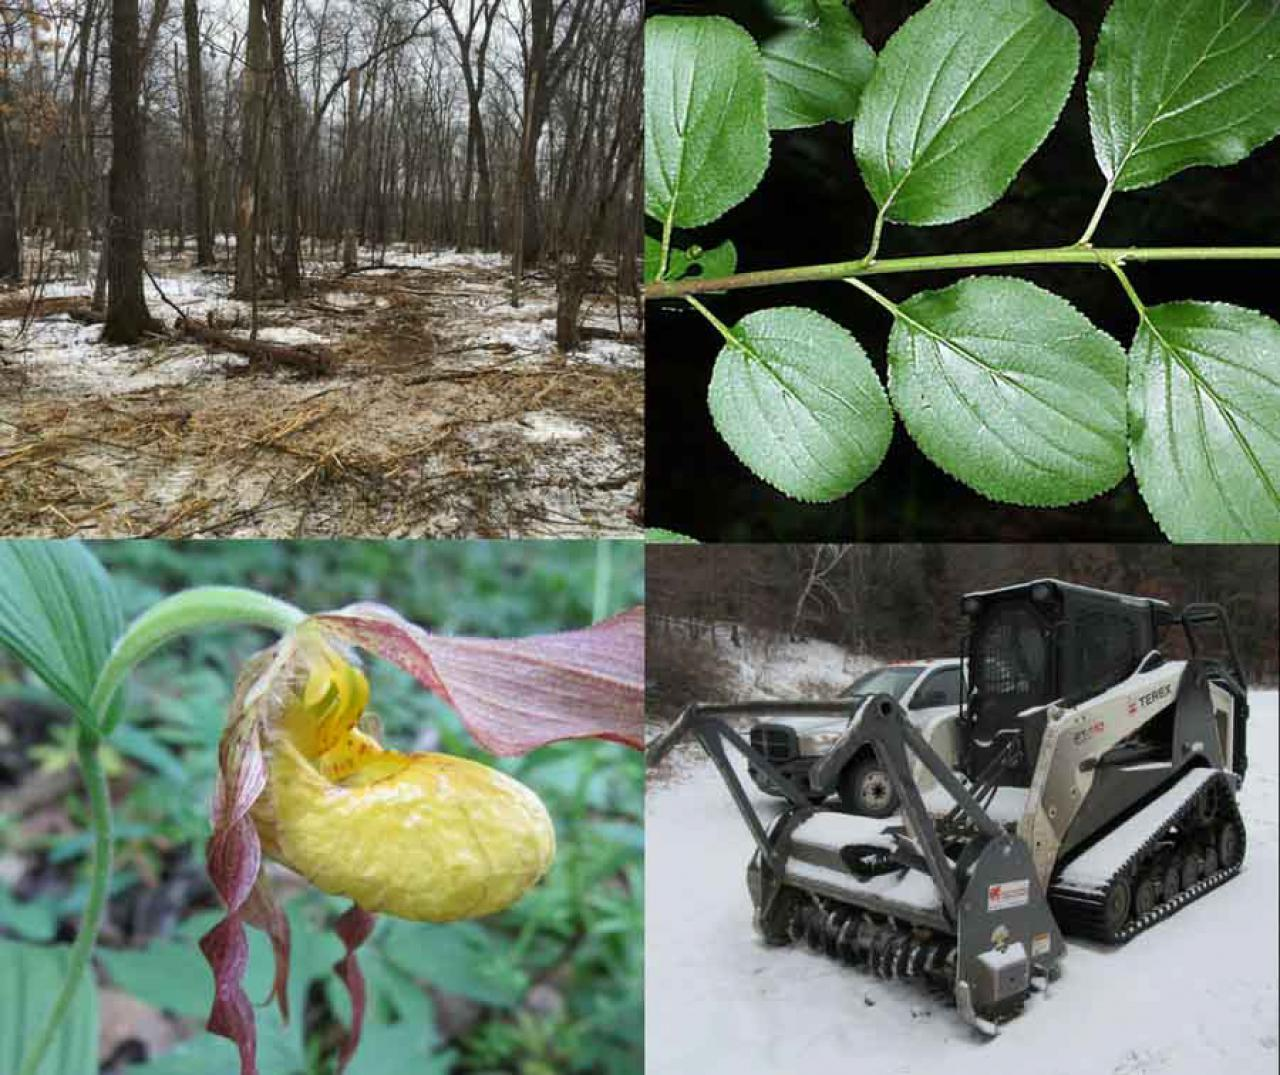 We set up a new research project in Hampton Woods to control buckthorn and see how different methods (such as the forestry mower, bottom right) best protect and encourage native plants (like the yellow ladyslipper, bottom left).